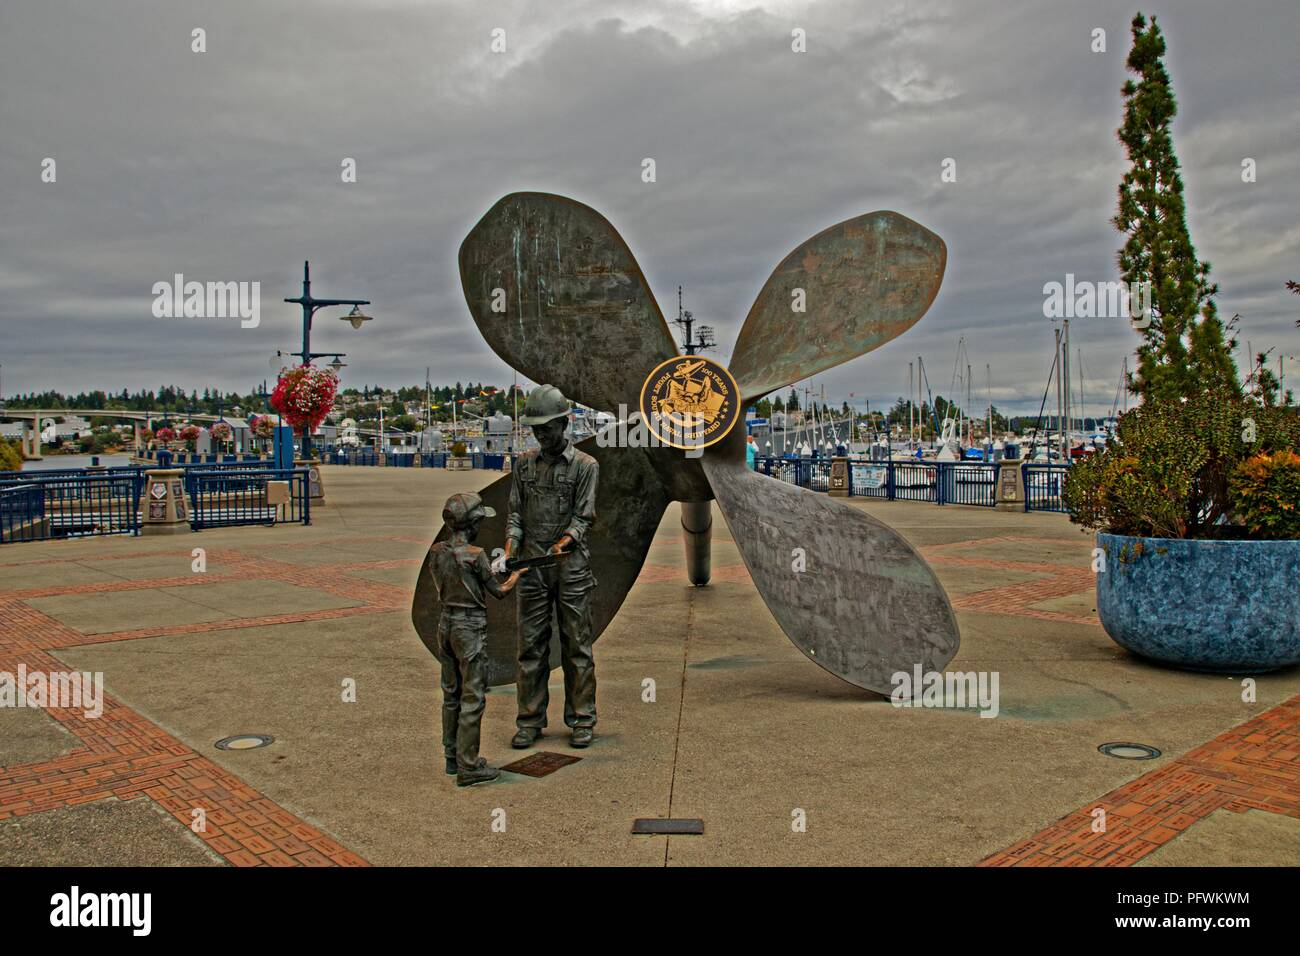 'The proud Tradition' statue in Bremerton - Stock Image